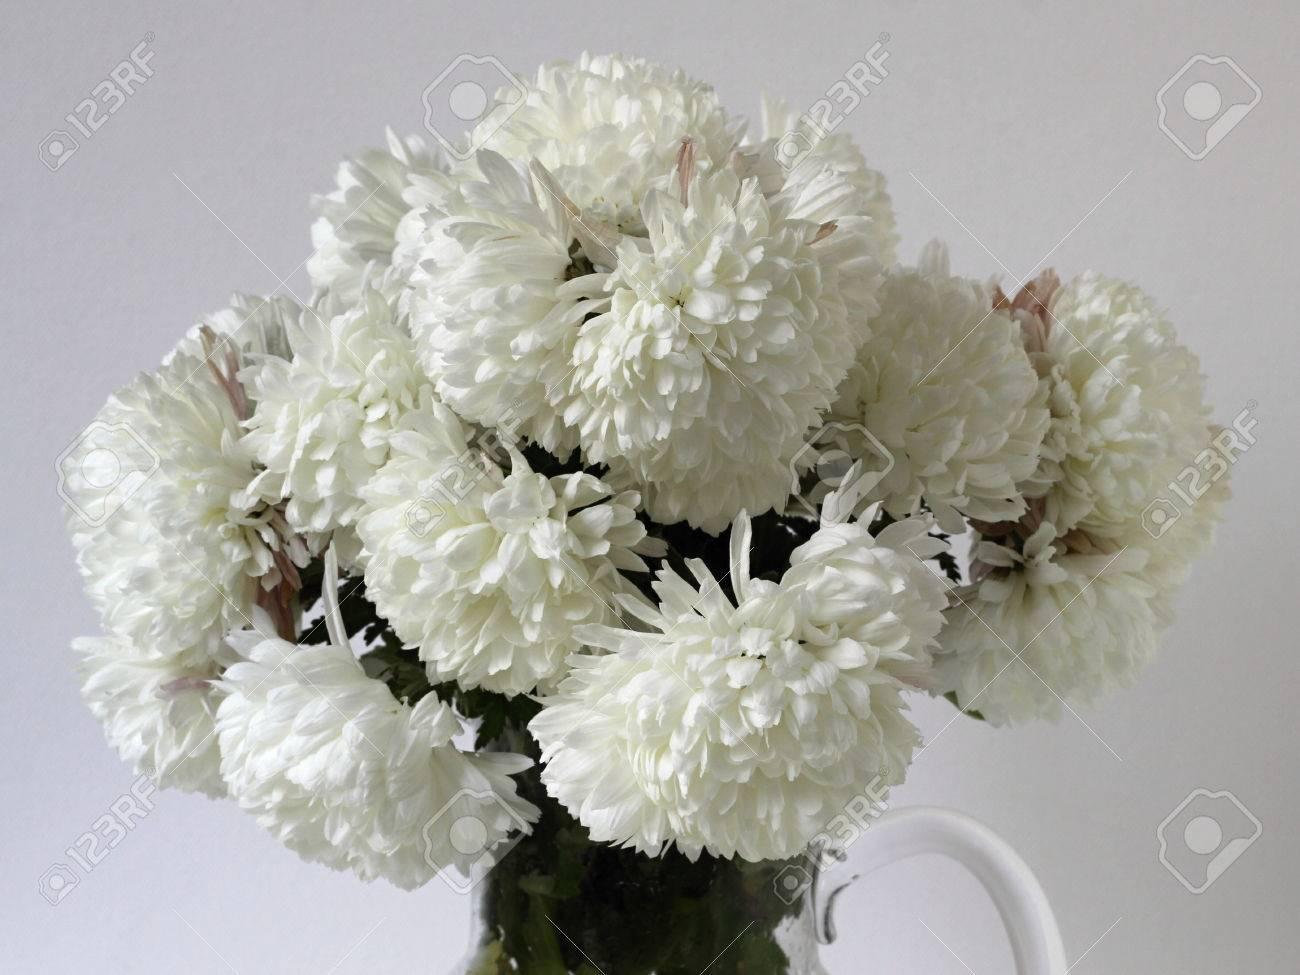 White Chrysanthemum Bunch Of Blooming Flowers Autumn Floral